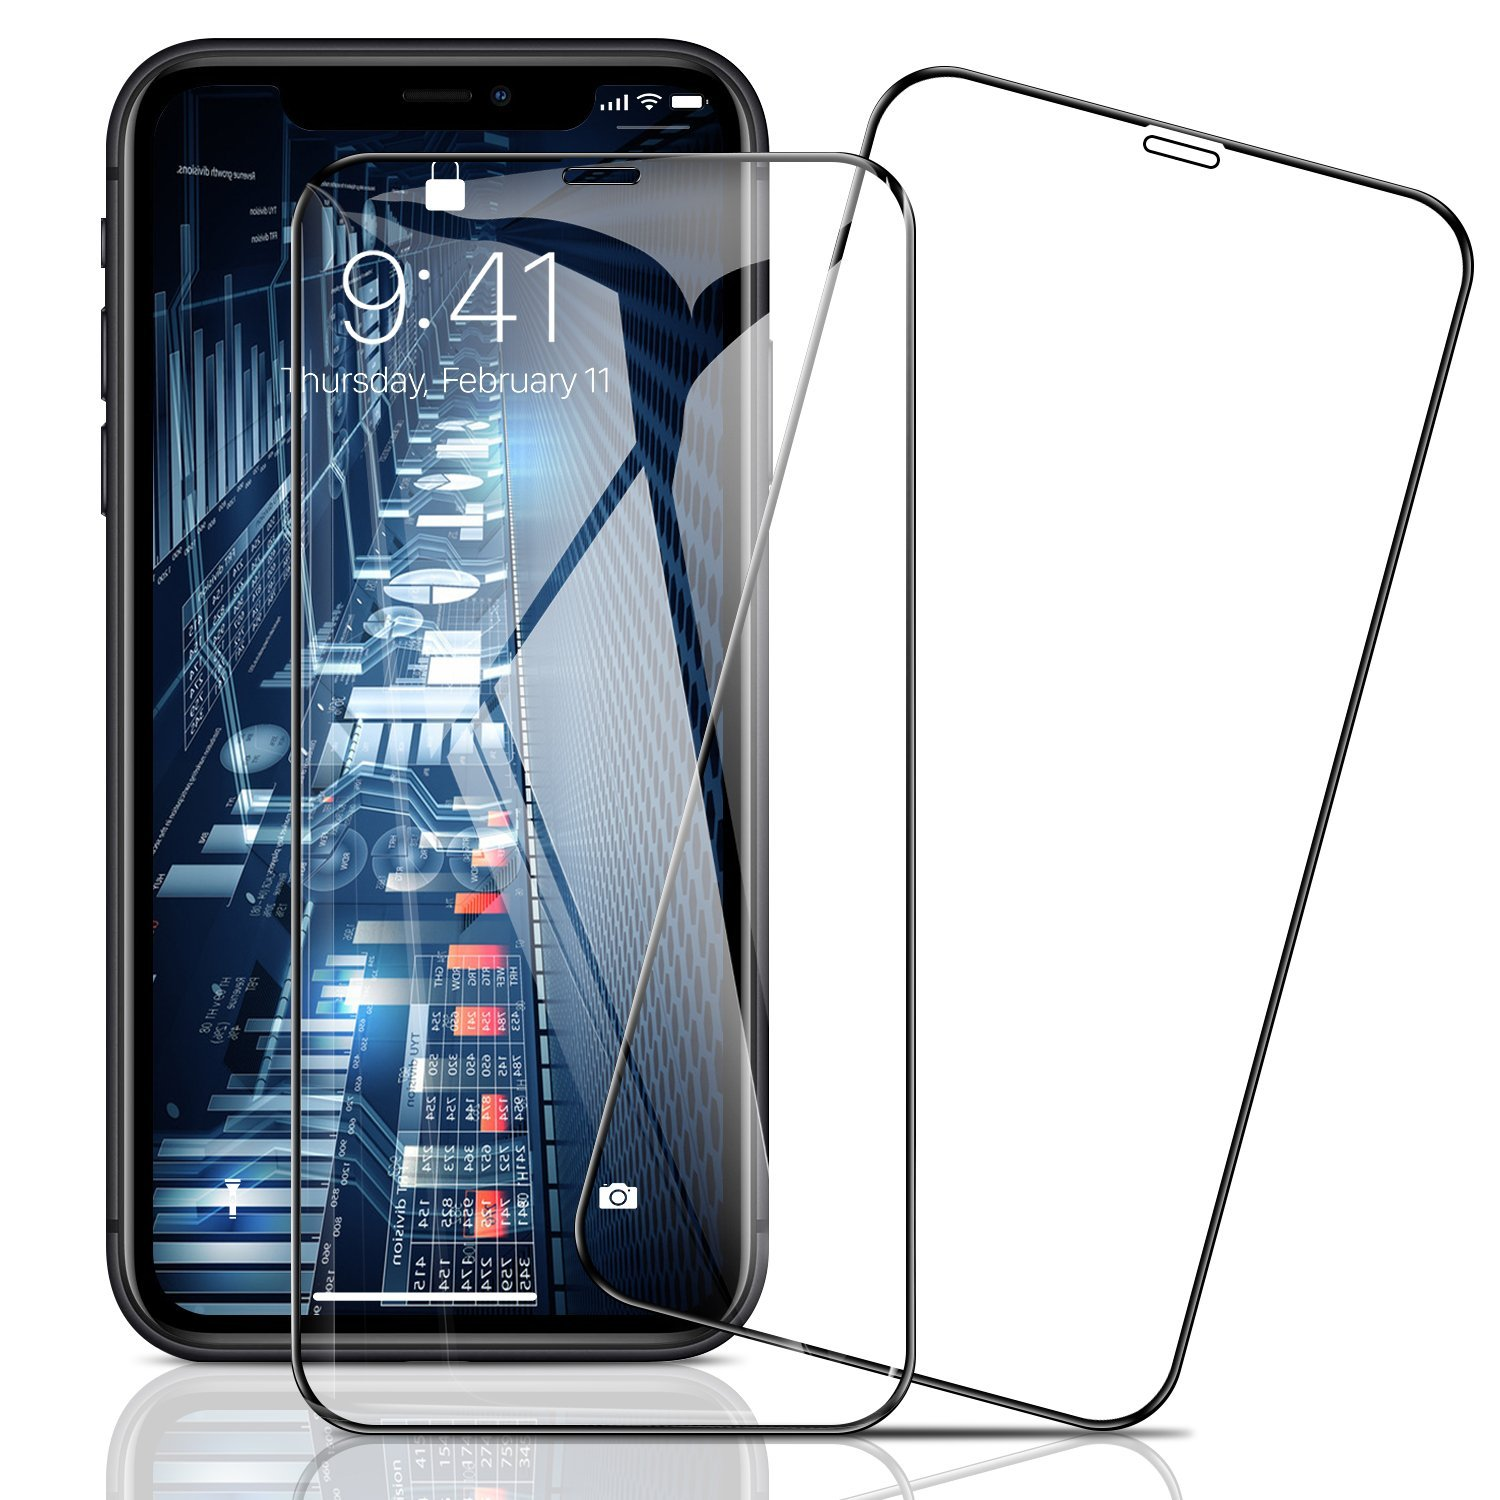 casekoo iPhone super protecive screen protector